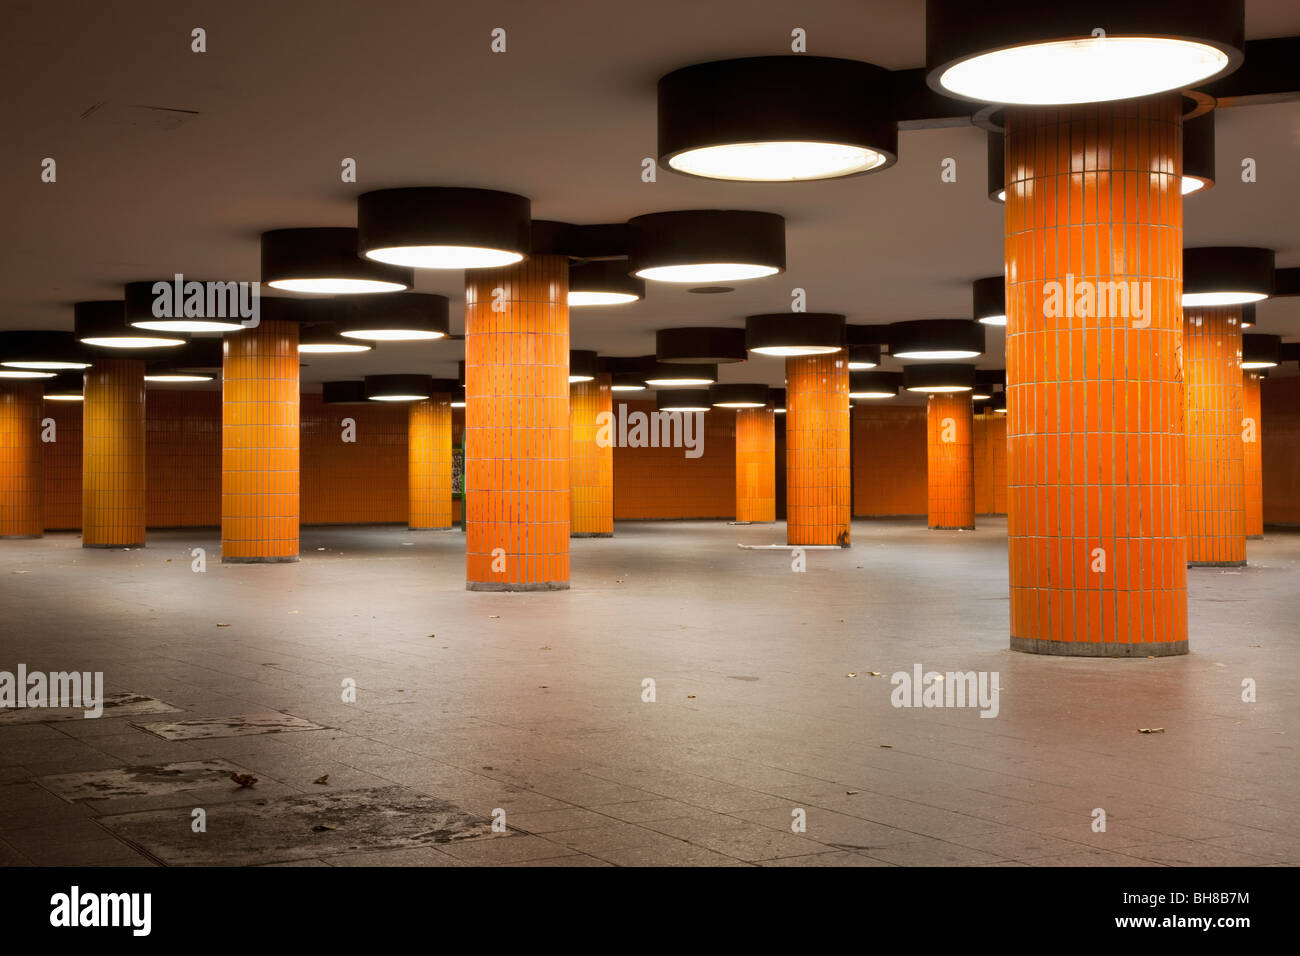 A vacant subway station foyer - Stock Image